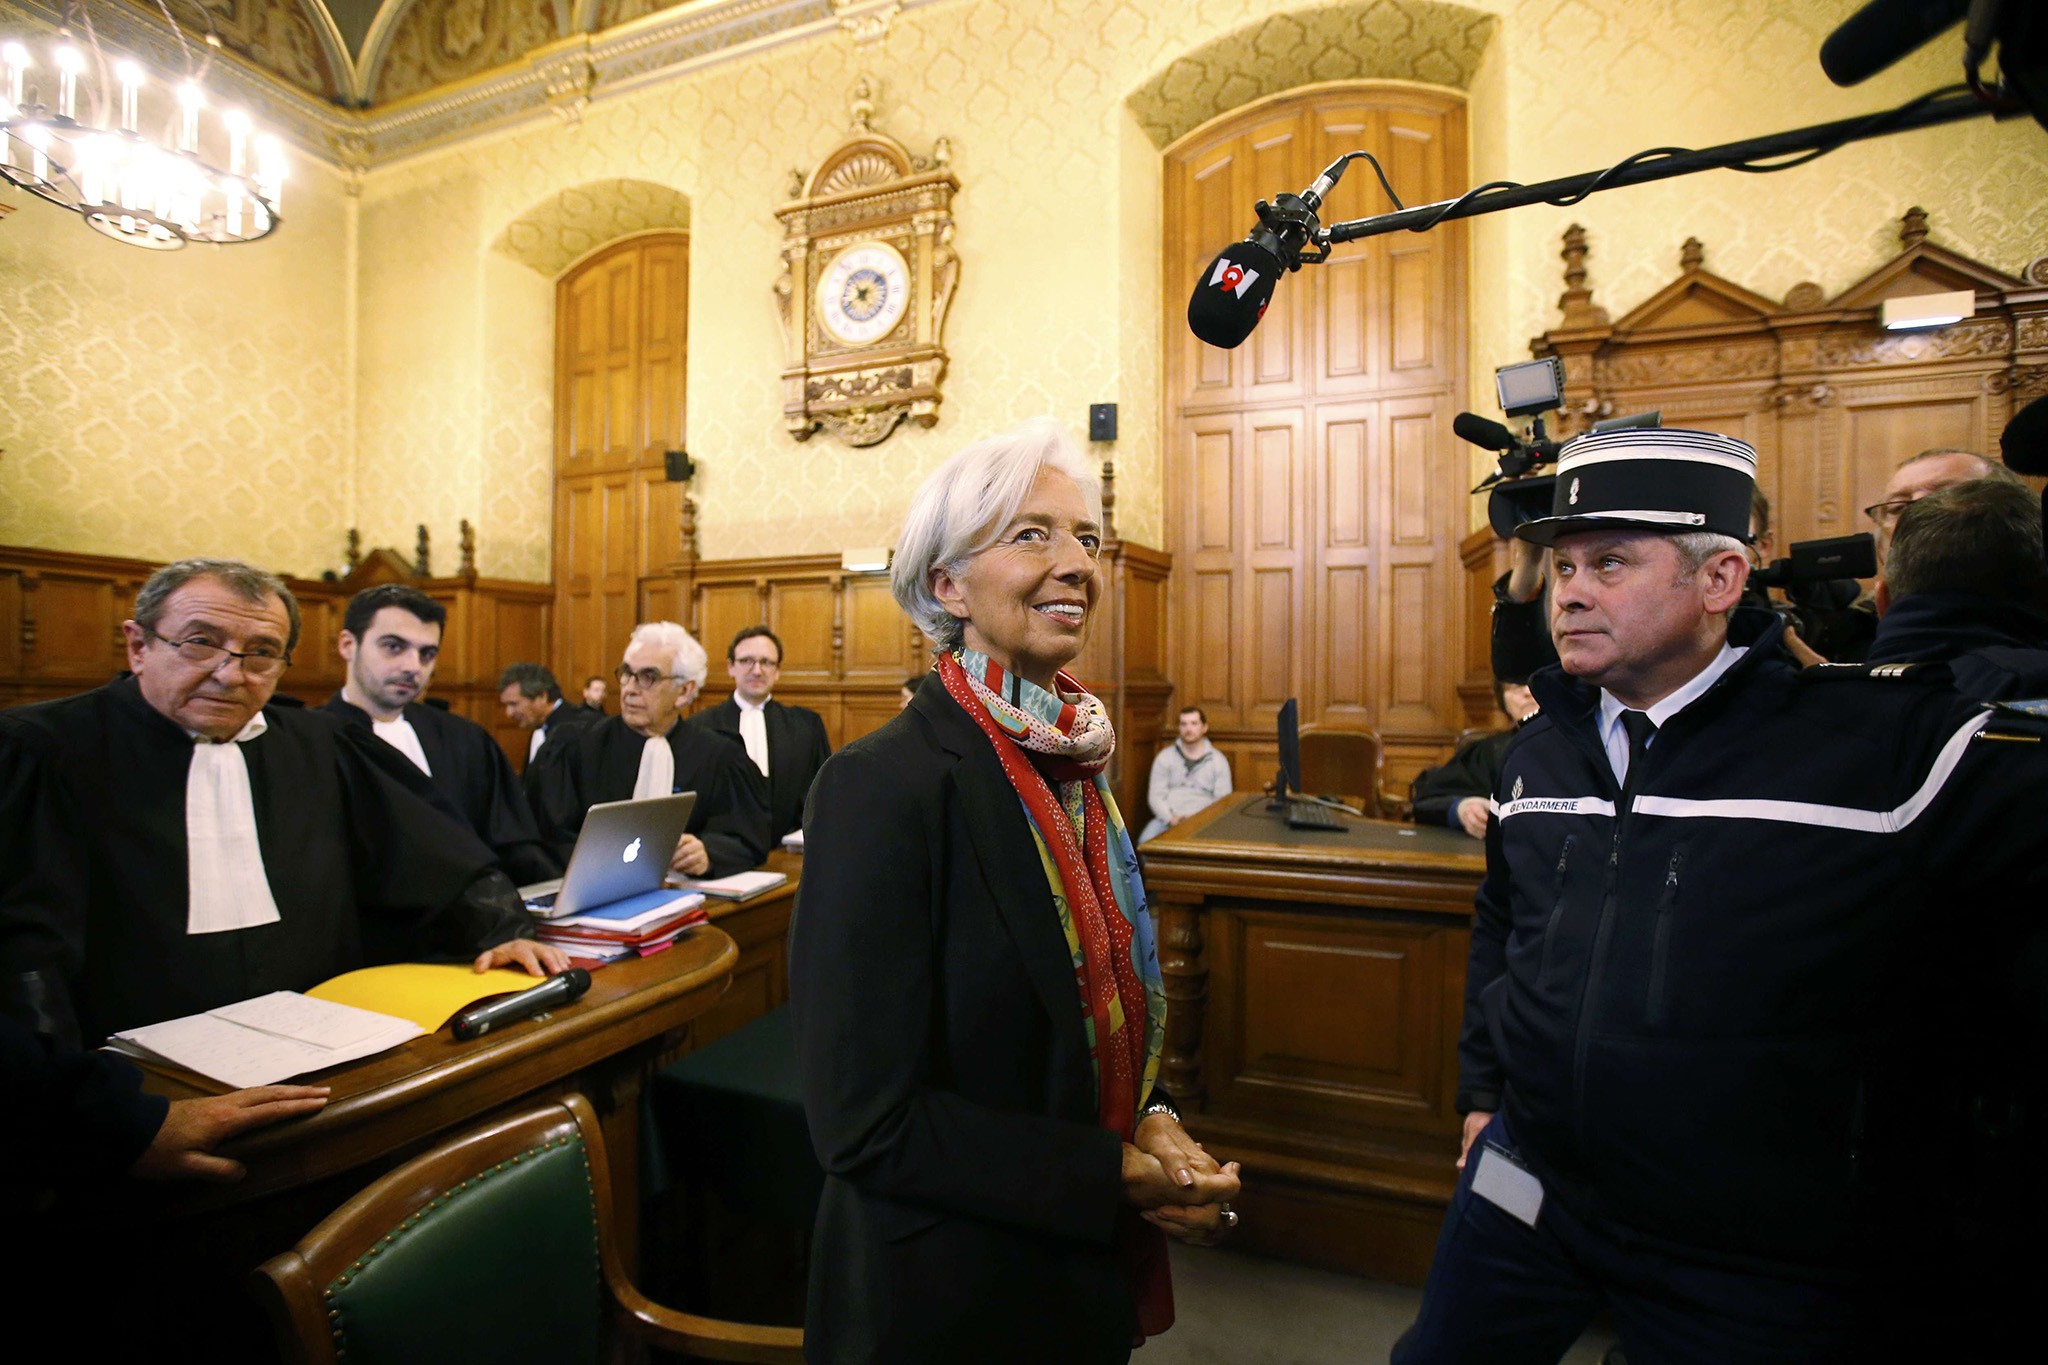 Managing Director of the International Monetary Fund (IMF) Christine Lagarde stands near her lawyer Patrick Maisonneuve (L) before the start of her trial about a state payout in 2008 to a French businessman, at the courts in Paris, France, December 12, 2016.   REUTERS/Charles Platiau